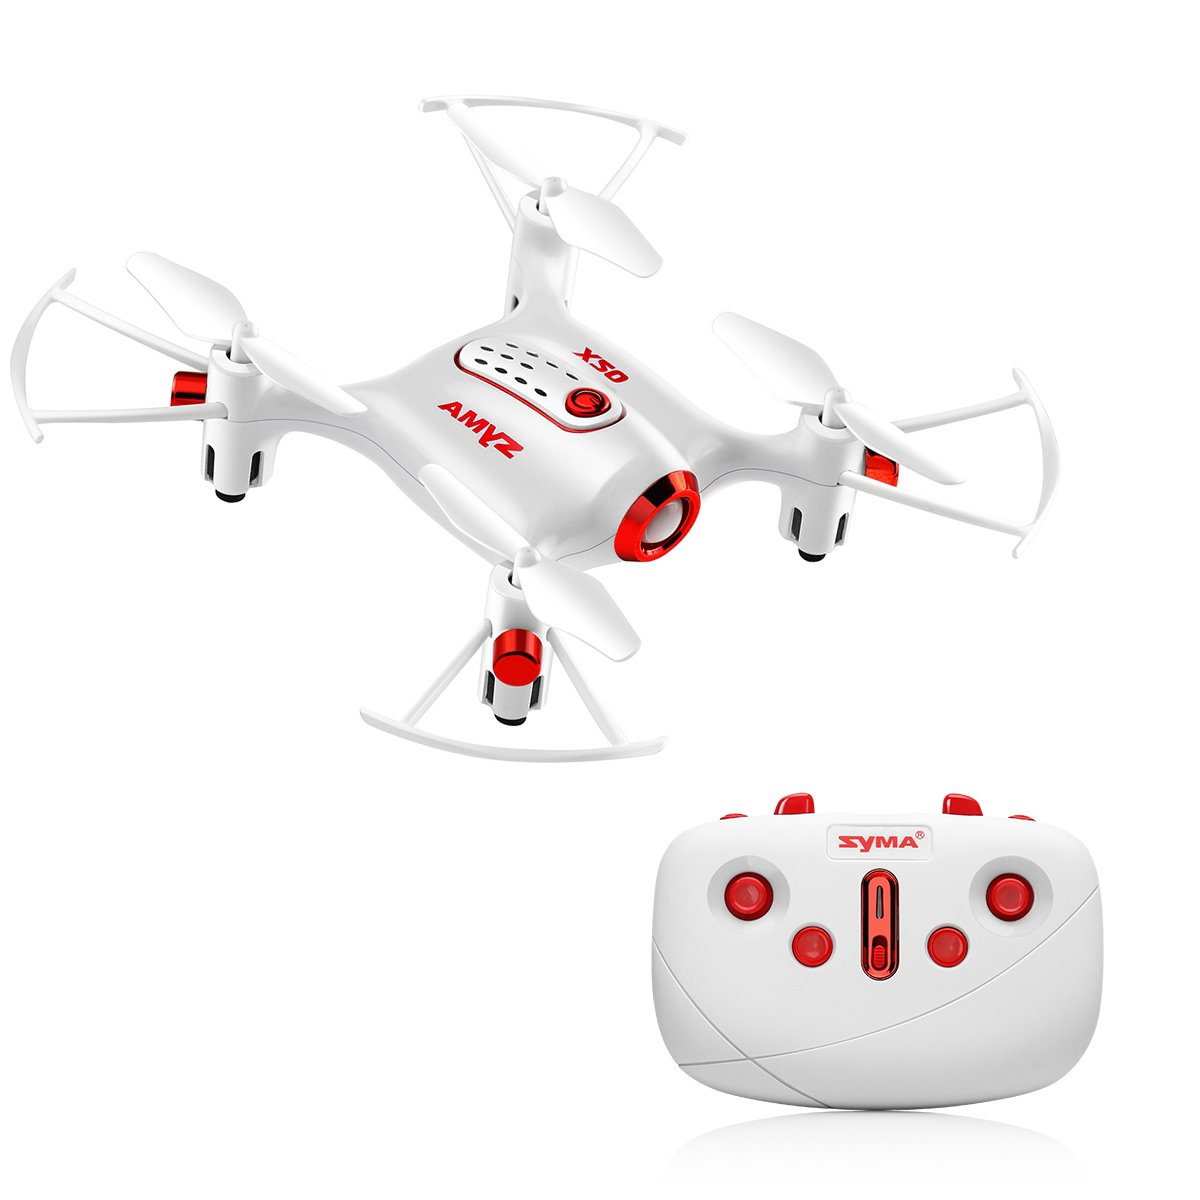 Syma X20 Mini Drone Headless Mode 2.4Ghz Nano LED RC Quadcopter Altitude Hold One Key Take-Off/Landing